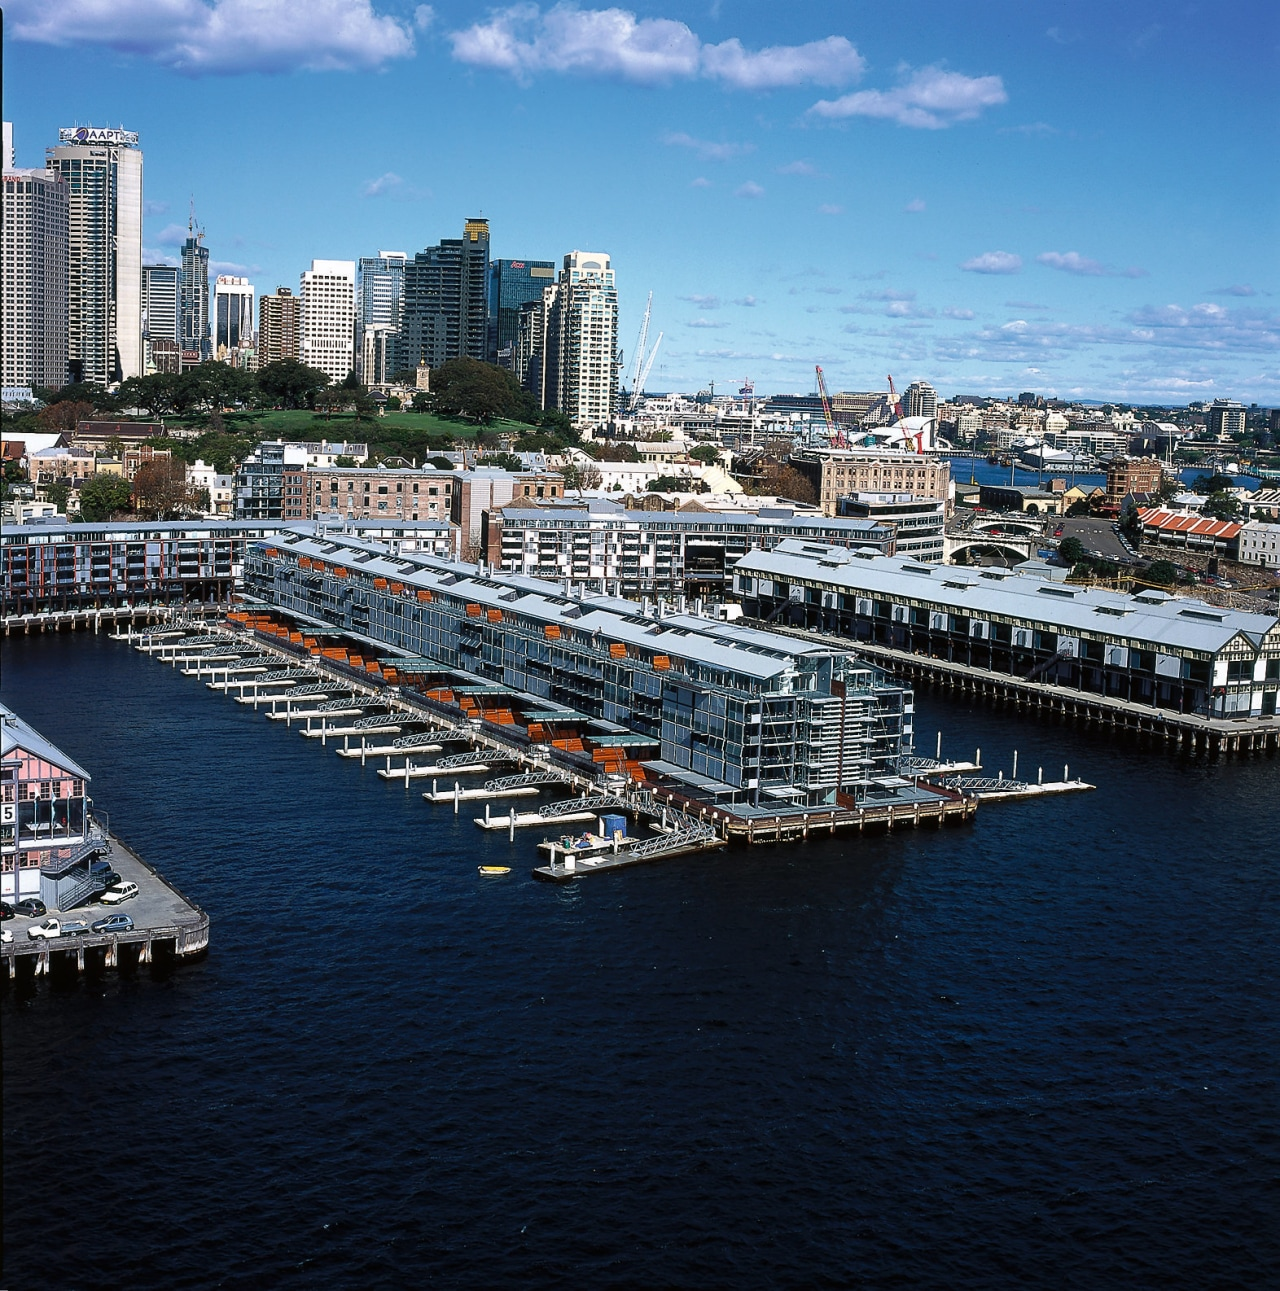 view of the redeveloped pier containg residential apartments aerial photography, bird's eye view, bridge, channel, city, cityscape, fixed link, harbor, marina, metropolis, metropolitan area, motor ship, passenger ship, port, sea, ship, sky, skyline, urban area, water, water transportation, waterway, black, teal